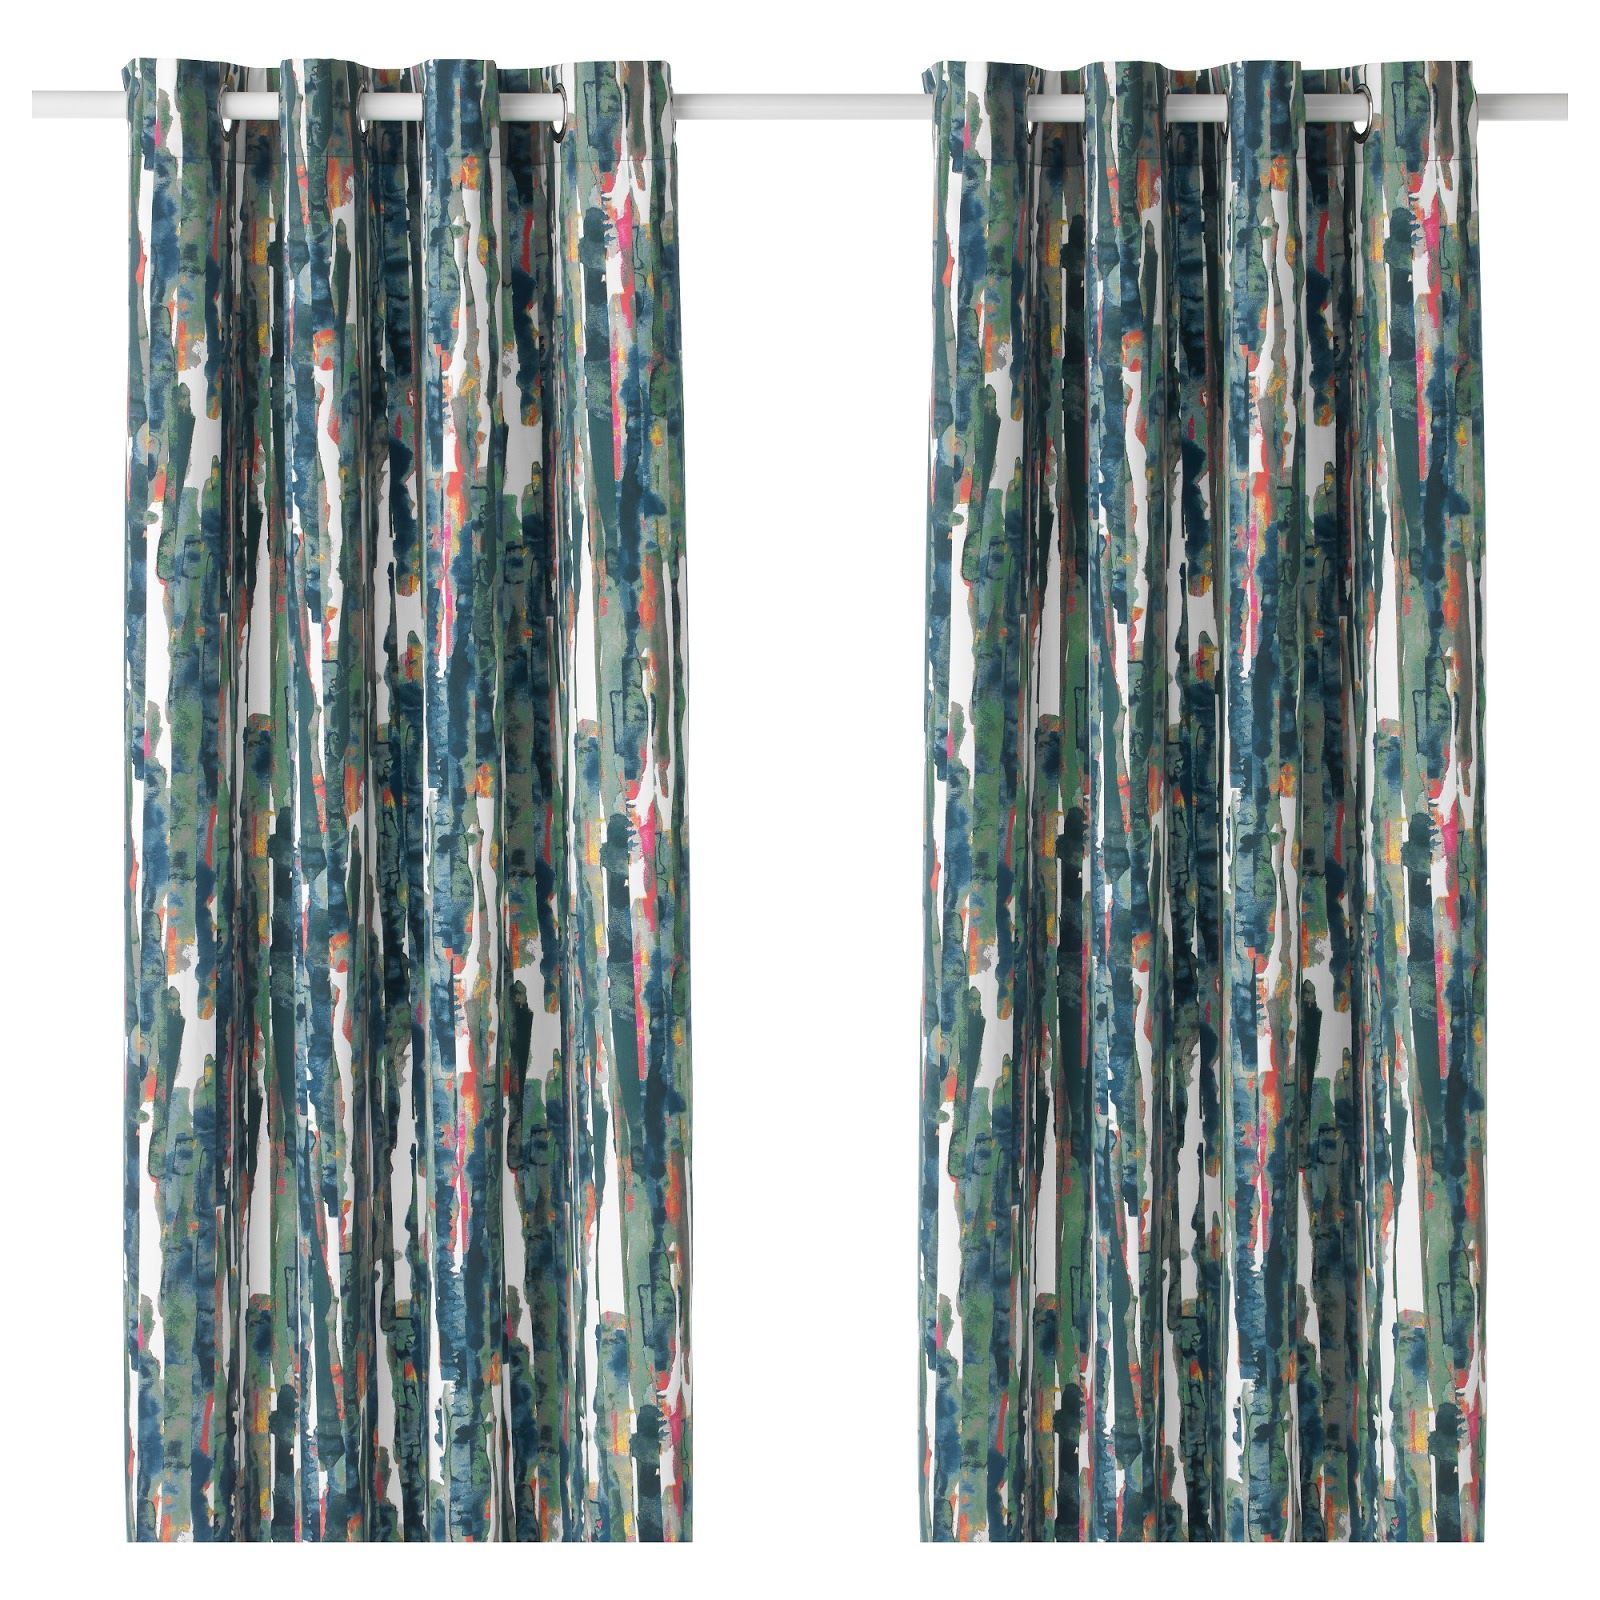 Icon Alliance Chin Curtain Variant Install Ideal Curtains Ideas